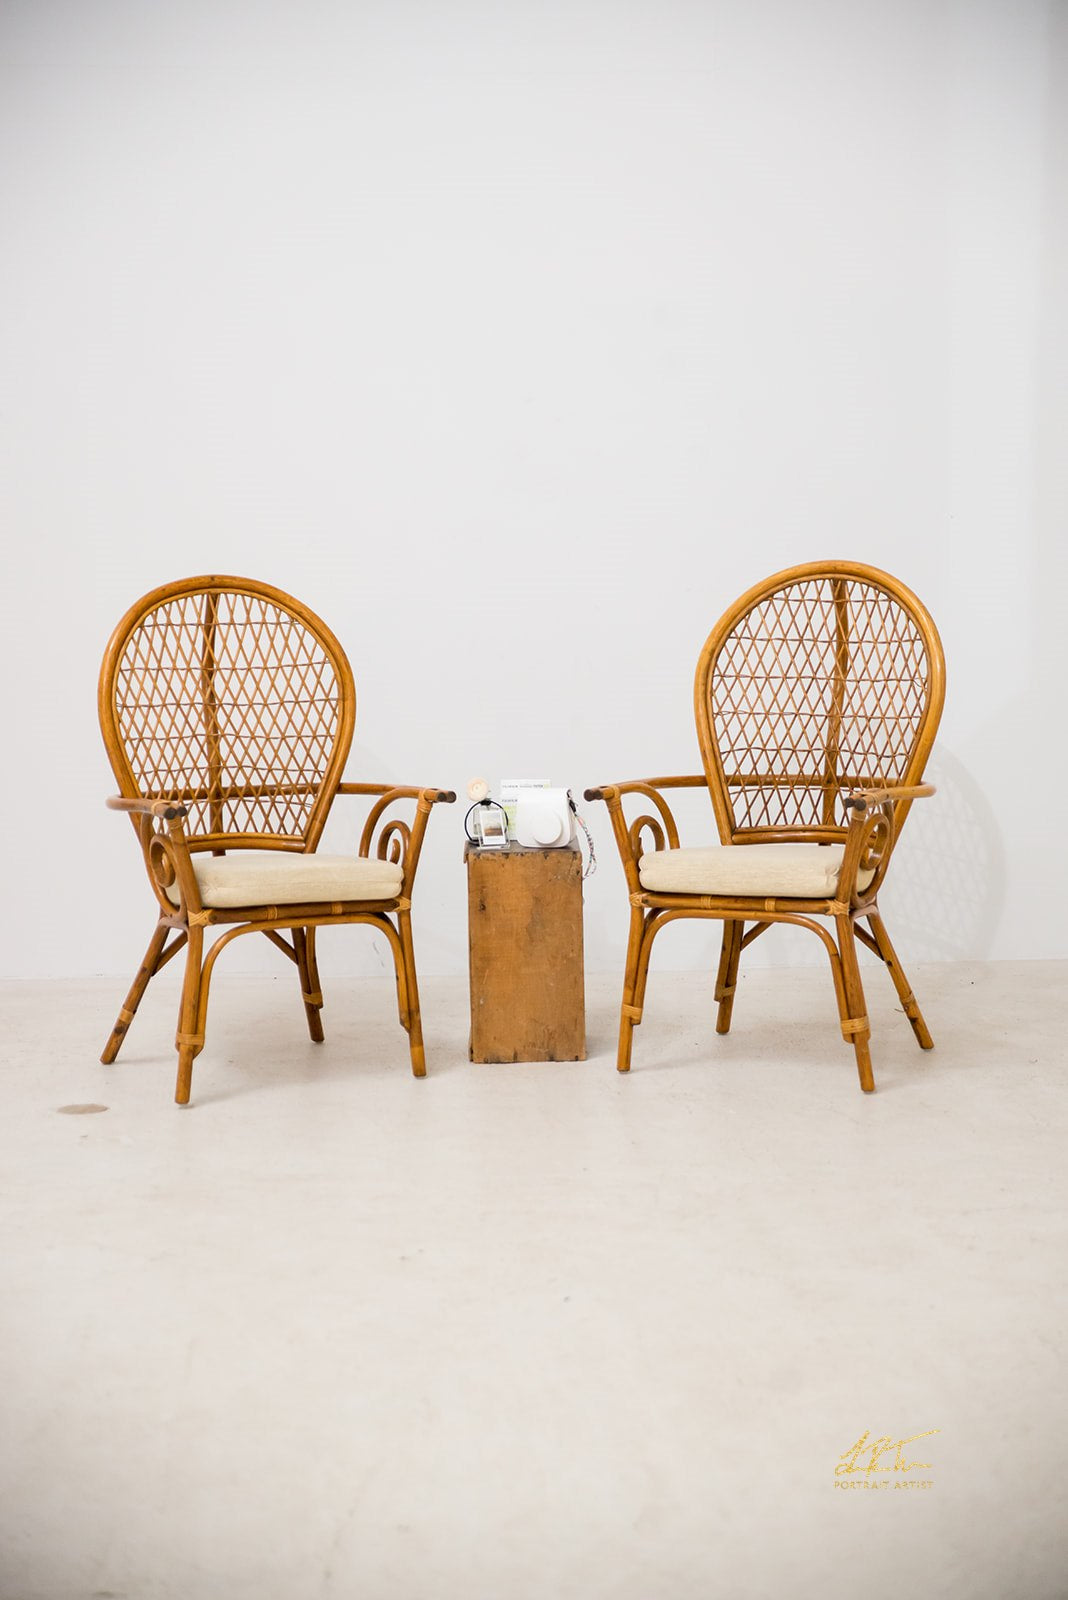 His & Hers Rattan Chairs